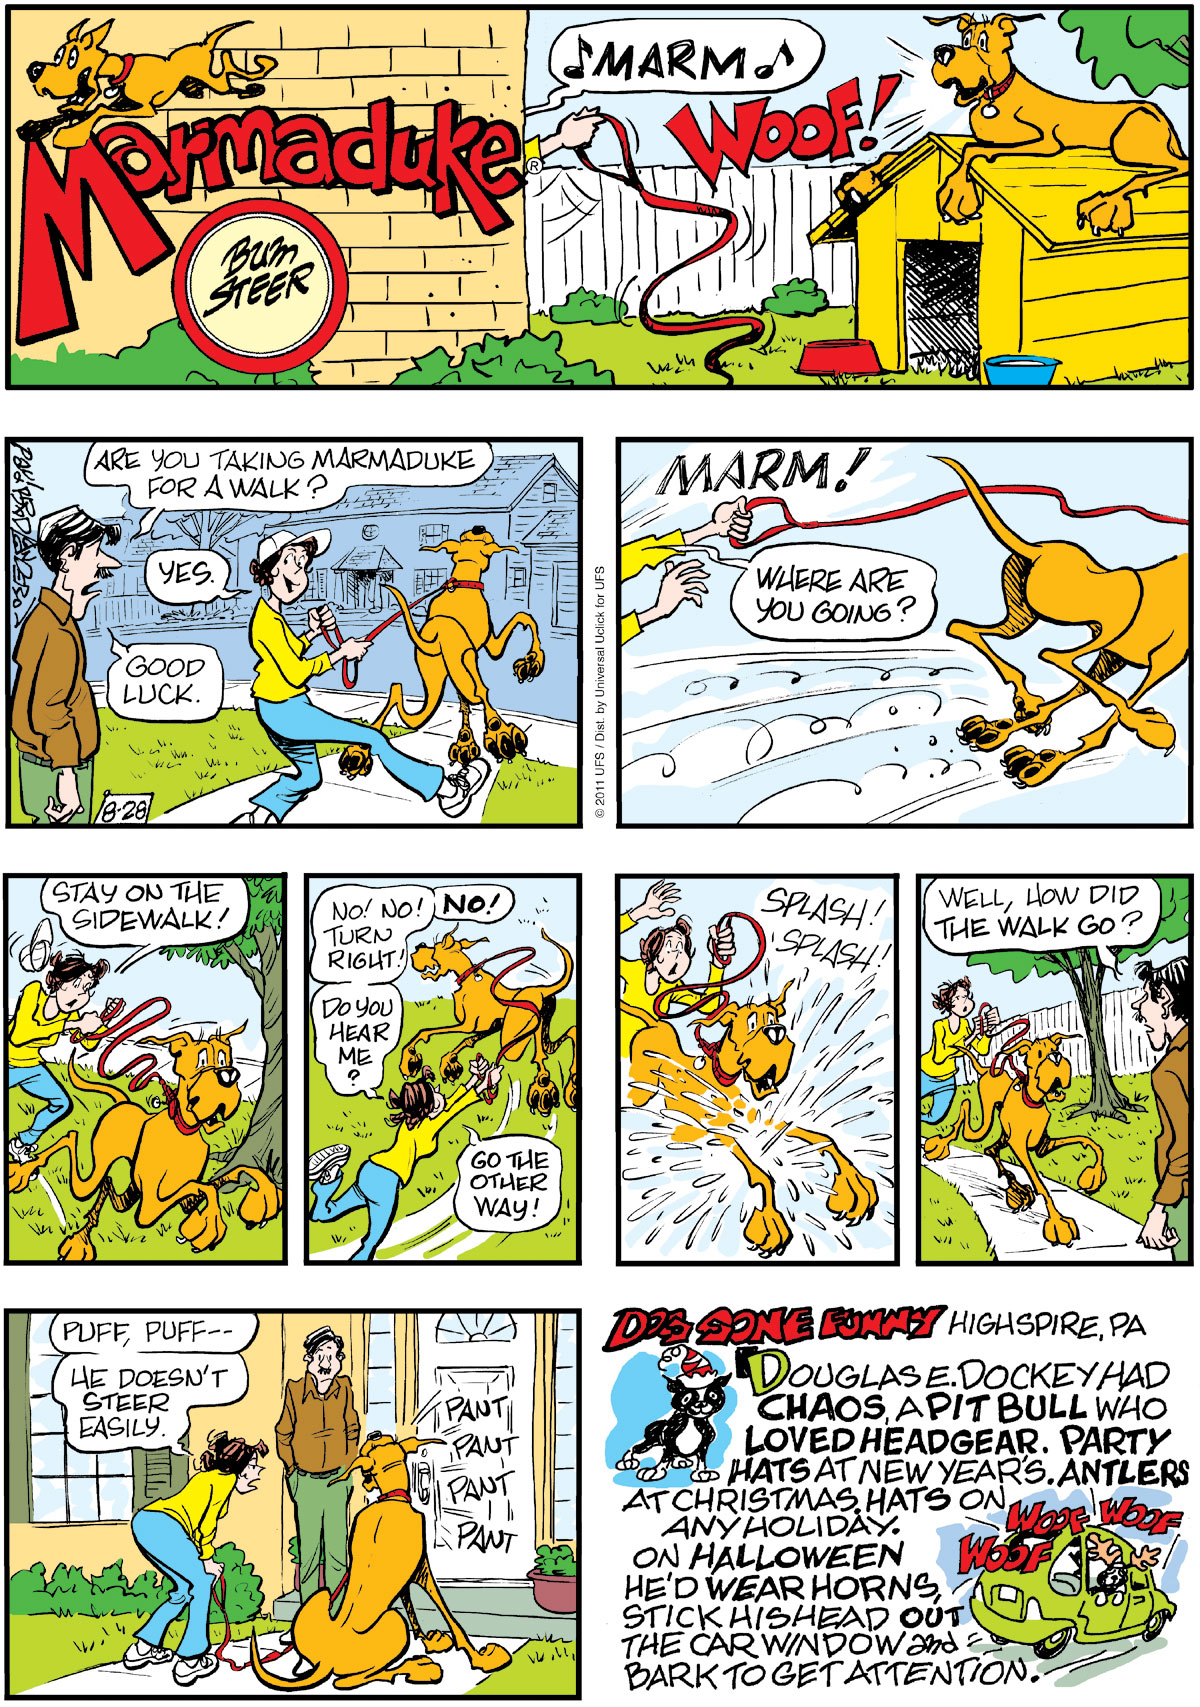 Dottie: Marm!  Marmaduke: WOOF!  Phil: Are you taking Marmaduke for a walk?  Dottie: Yes.  Phil: Good luck.  Dottie: Marm! Where are you going? Stay on the sidewalk! No! No! NO! Turn right! Do you hear me? Go the other way! <Splash! Splash!>  Phil: Well, how did the walk go?  Dottie: <Puff, puff >He doesn't steer easily. Dog Gone Funny: Highspire, PA Douglas E. Dockey had Chaos, a pit bull who loved headgear. Party hats at New Year's. Antlers at Christmas hats on any holiday. On Halloween he's wear horns stick his head out the car window and bark to get attention.